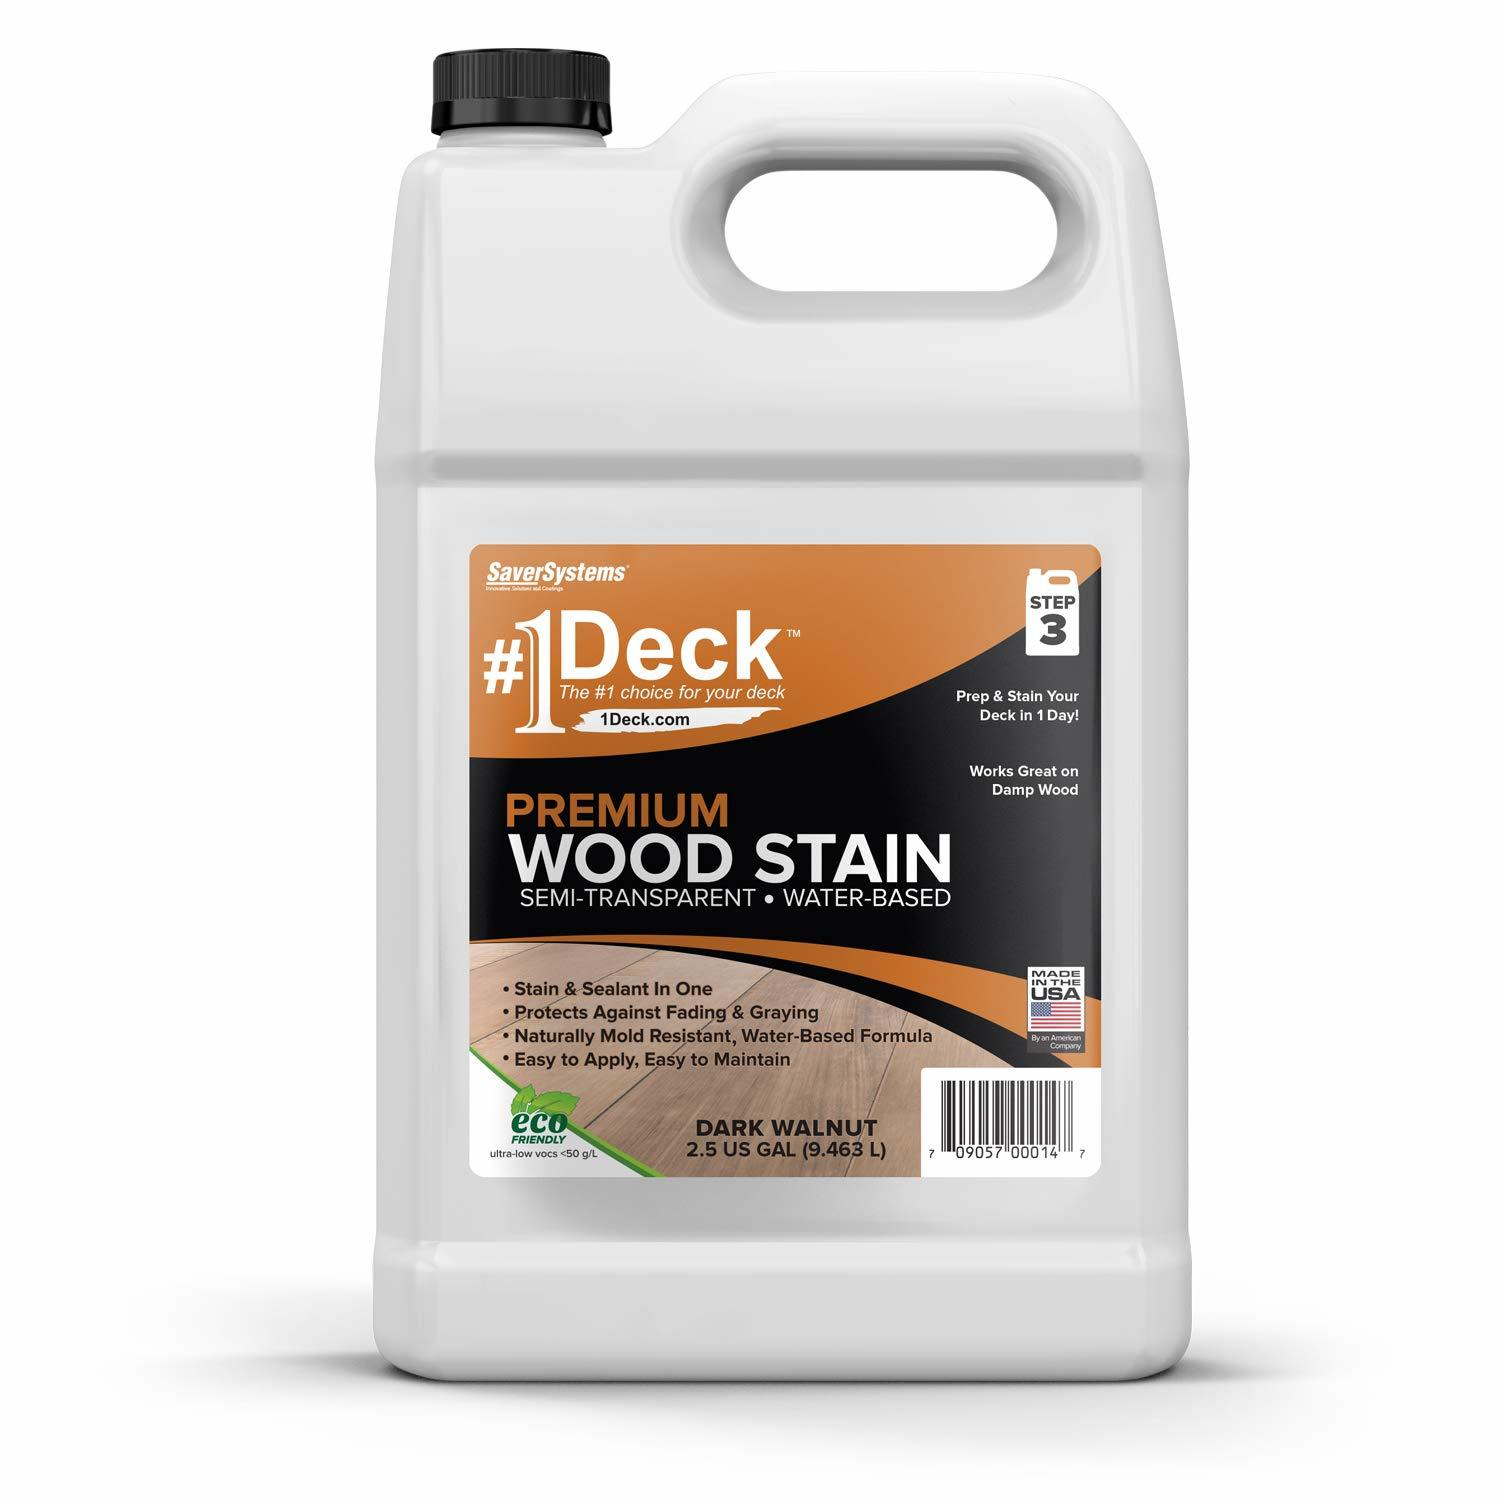 #1 Deck Stain - Premium Semi-Transparent Wood Stain for Decks